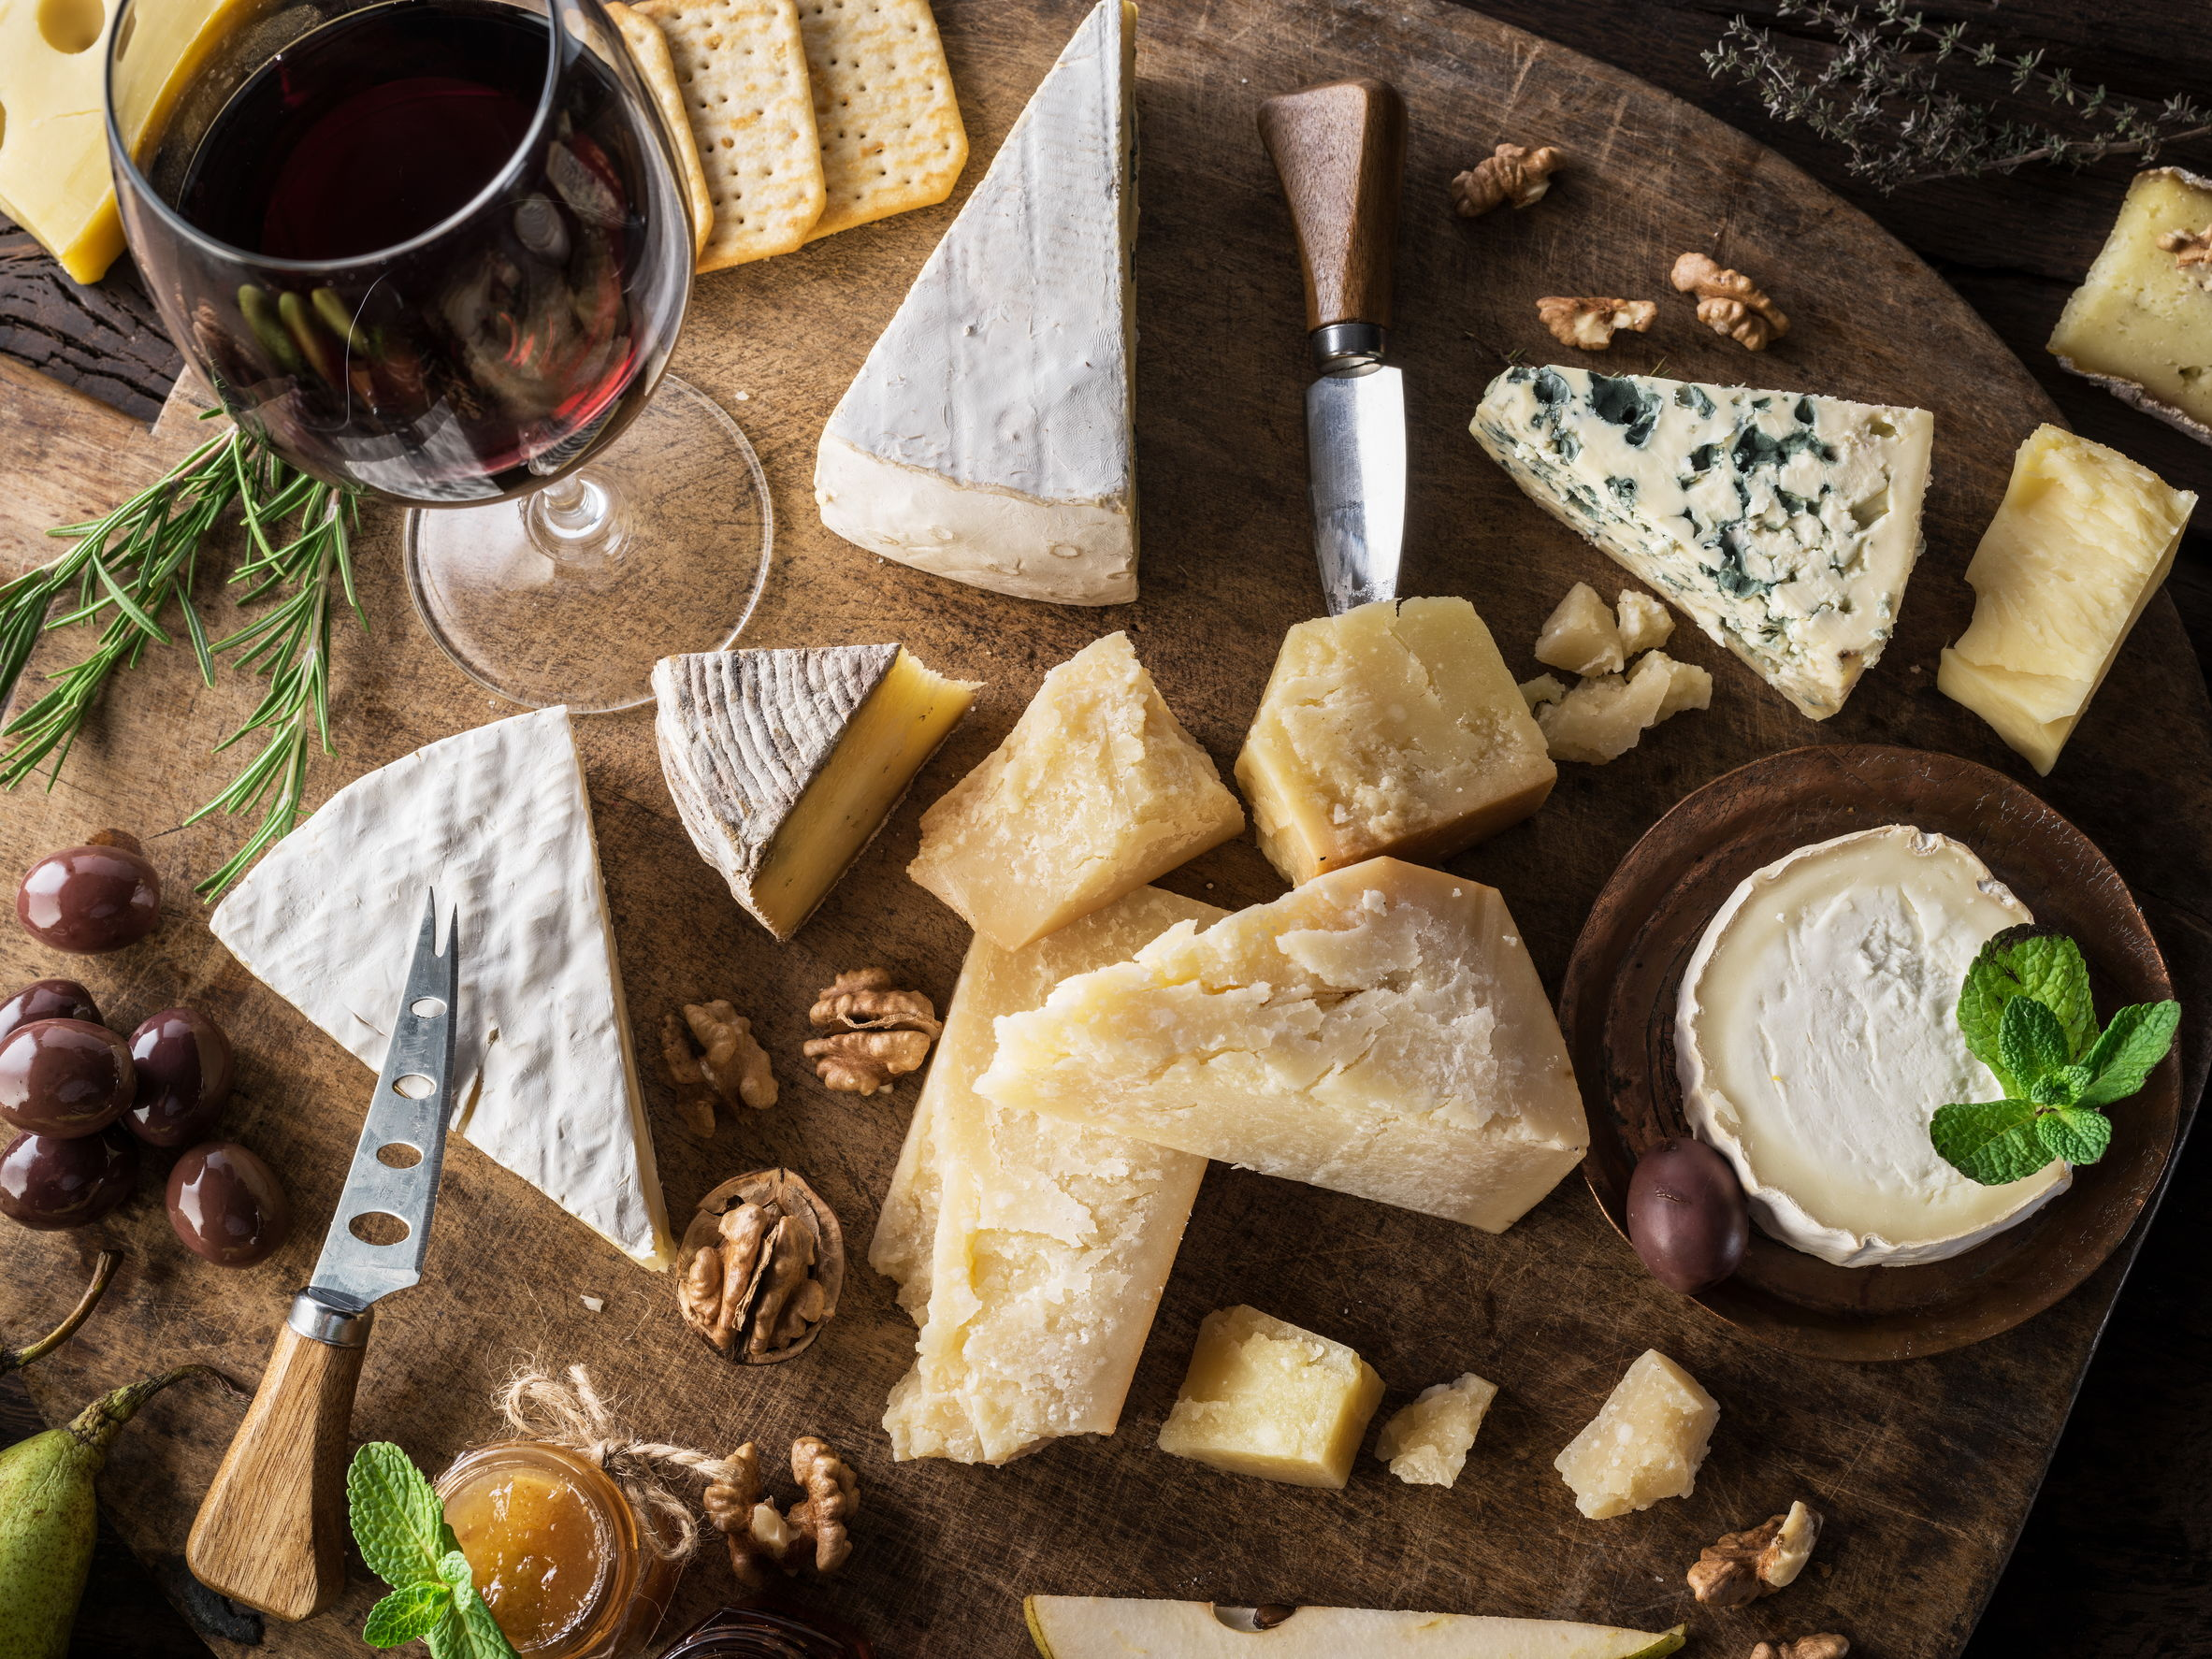 Wine & Cheese for Valentine's Day